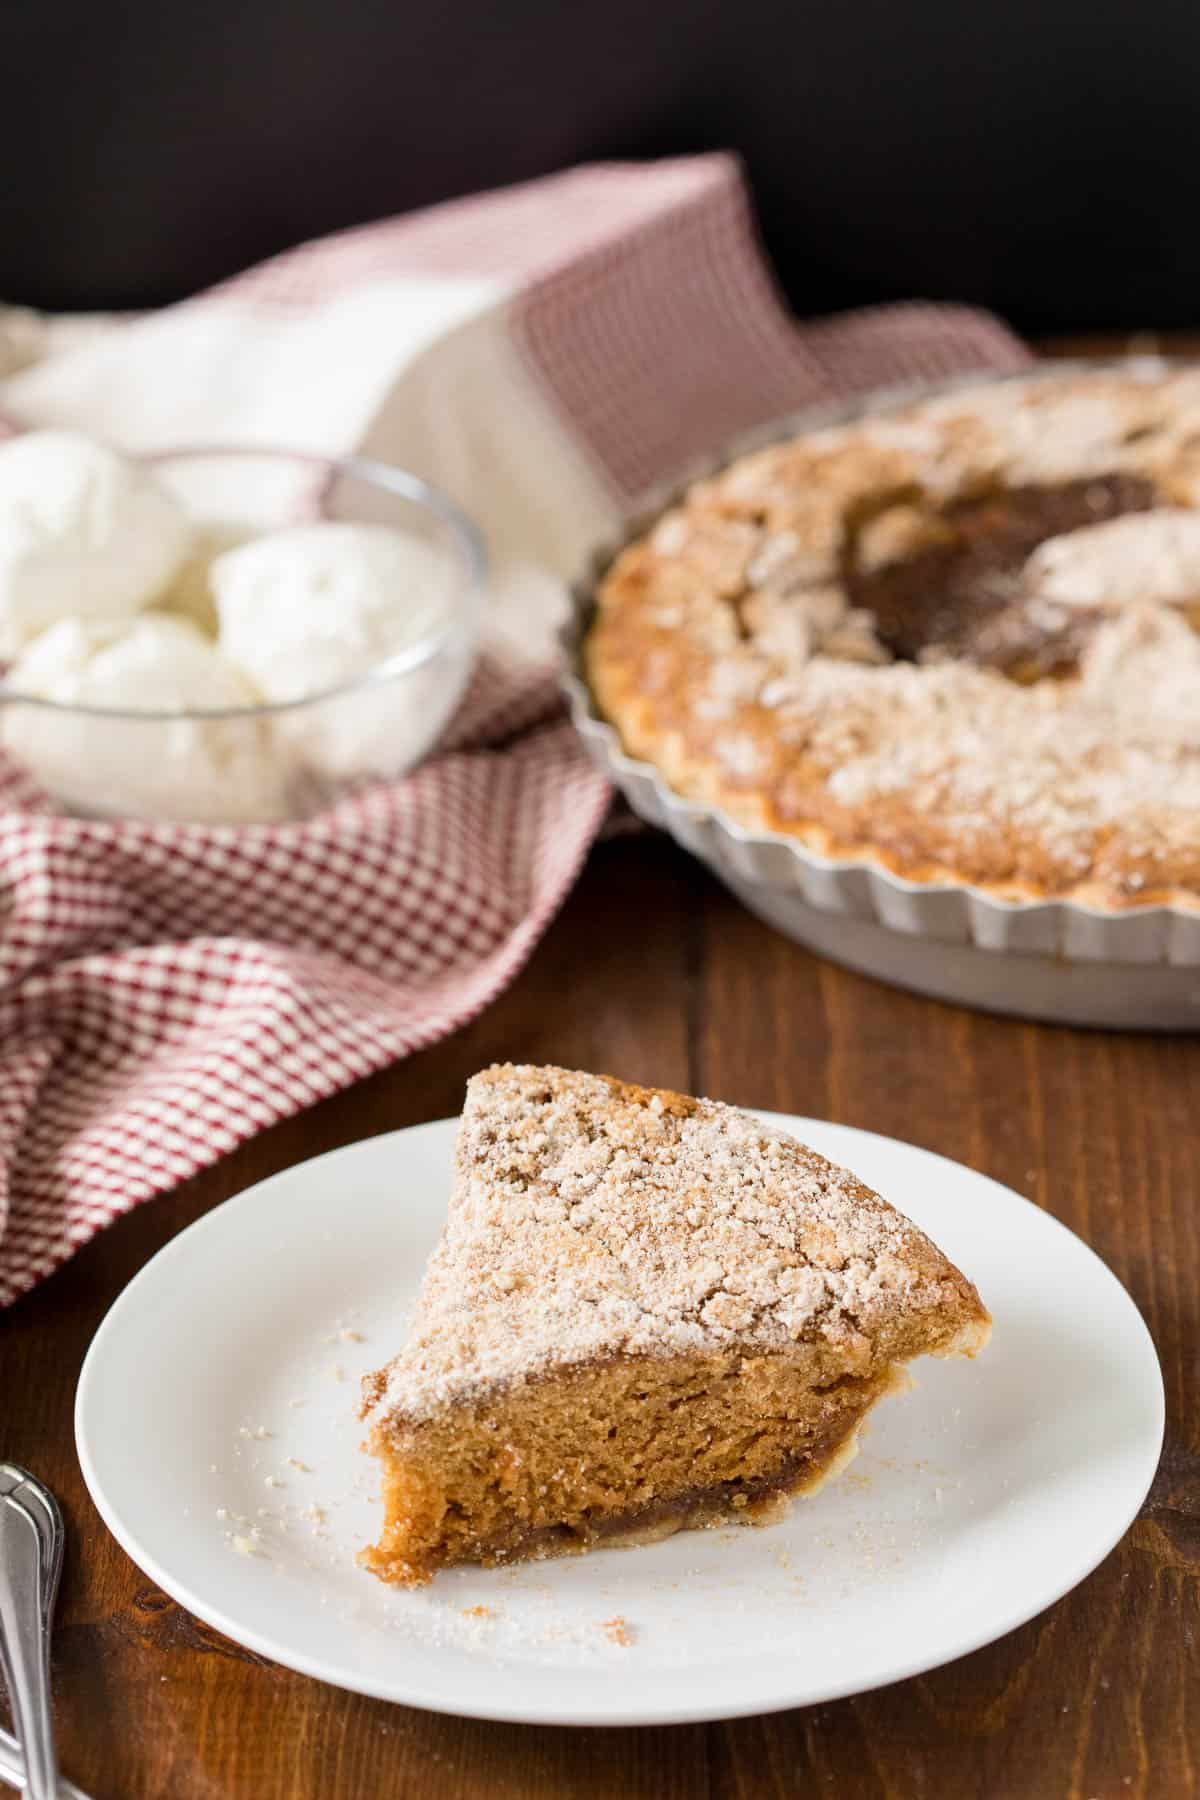 Shoofly Pie - A popular Pennsylvania Dutch pie recipe from the 1800s.Great with coffee or a scoop of ice cream! A vintage dessert perfect for parties.